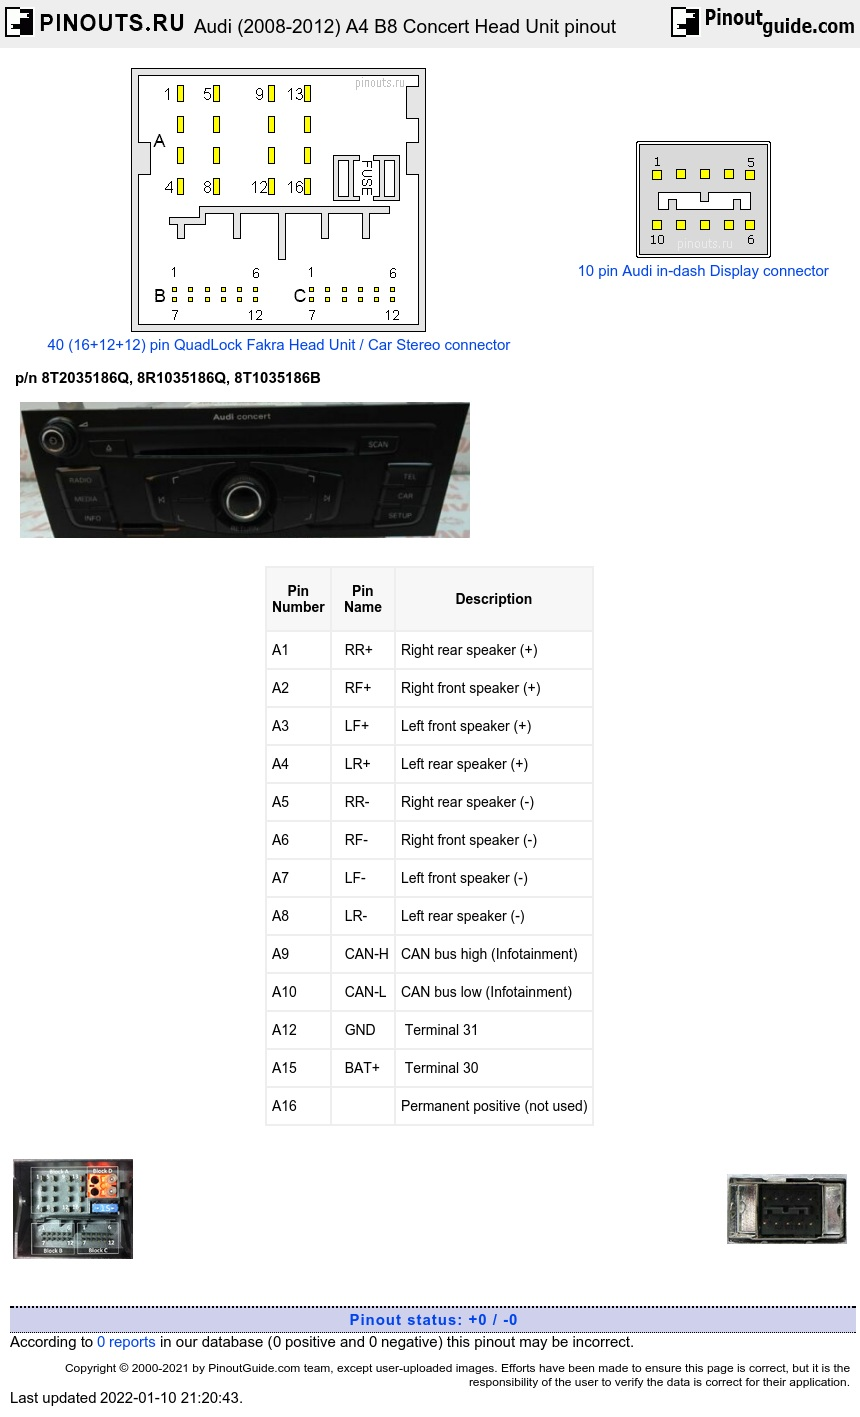 Audi A4, B8 (2008-2012) Concert Head Unit diagram